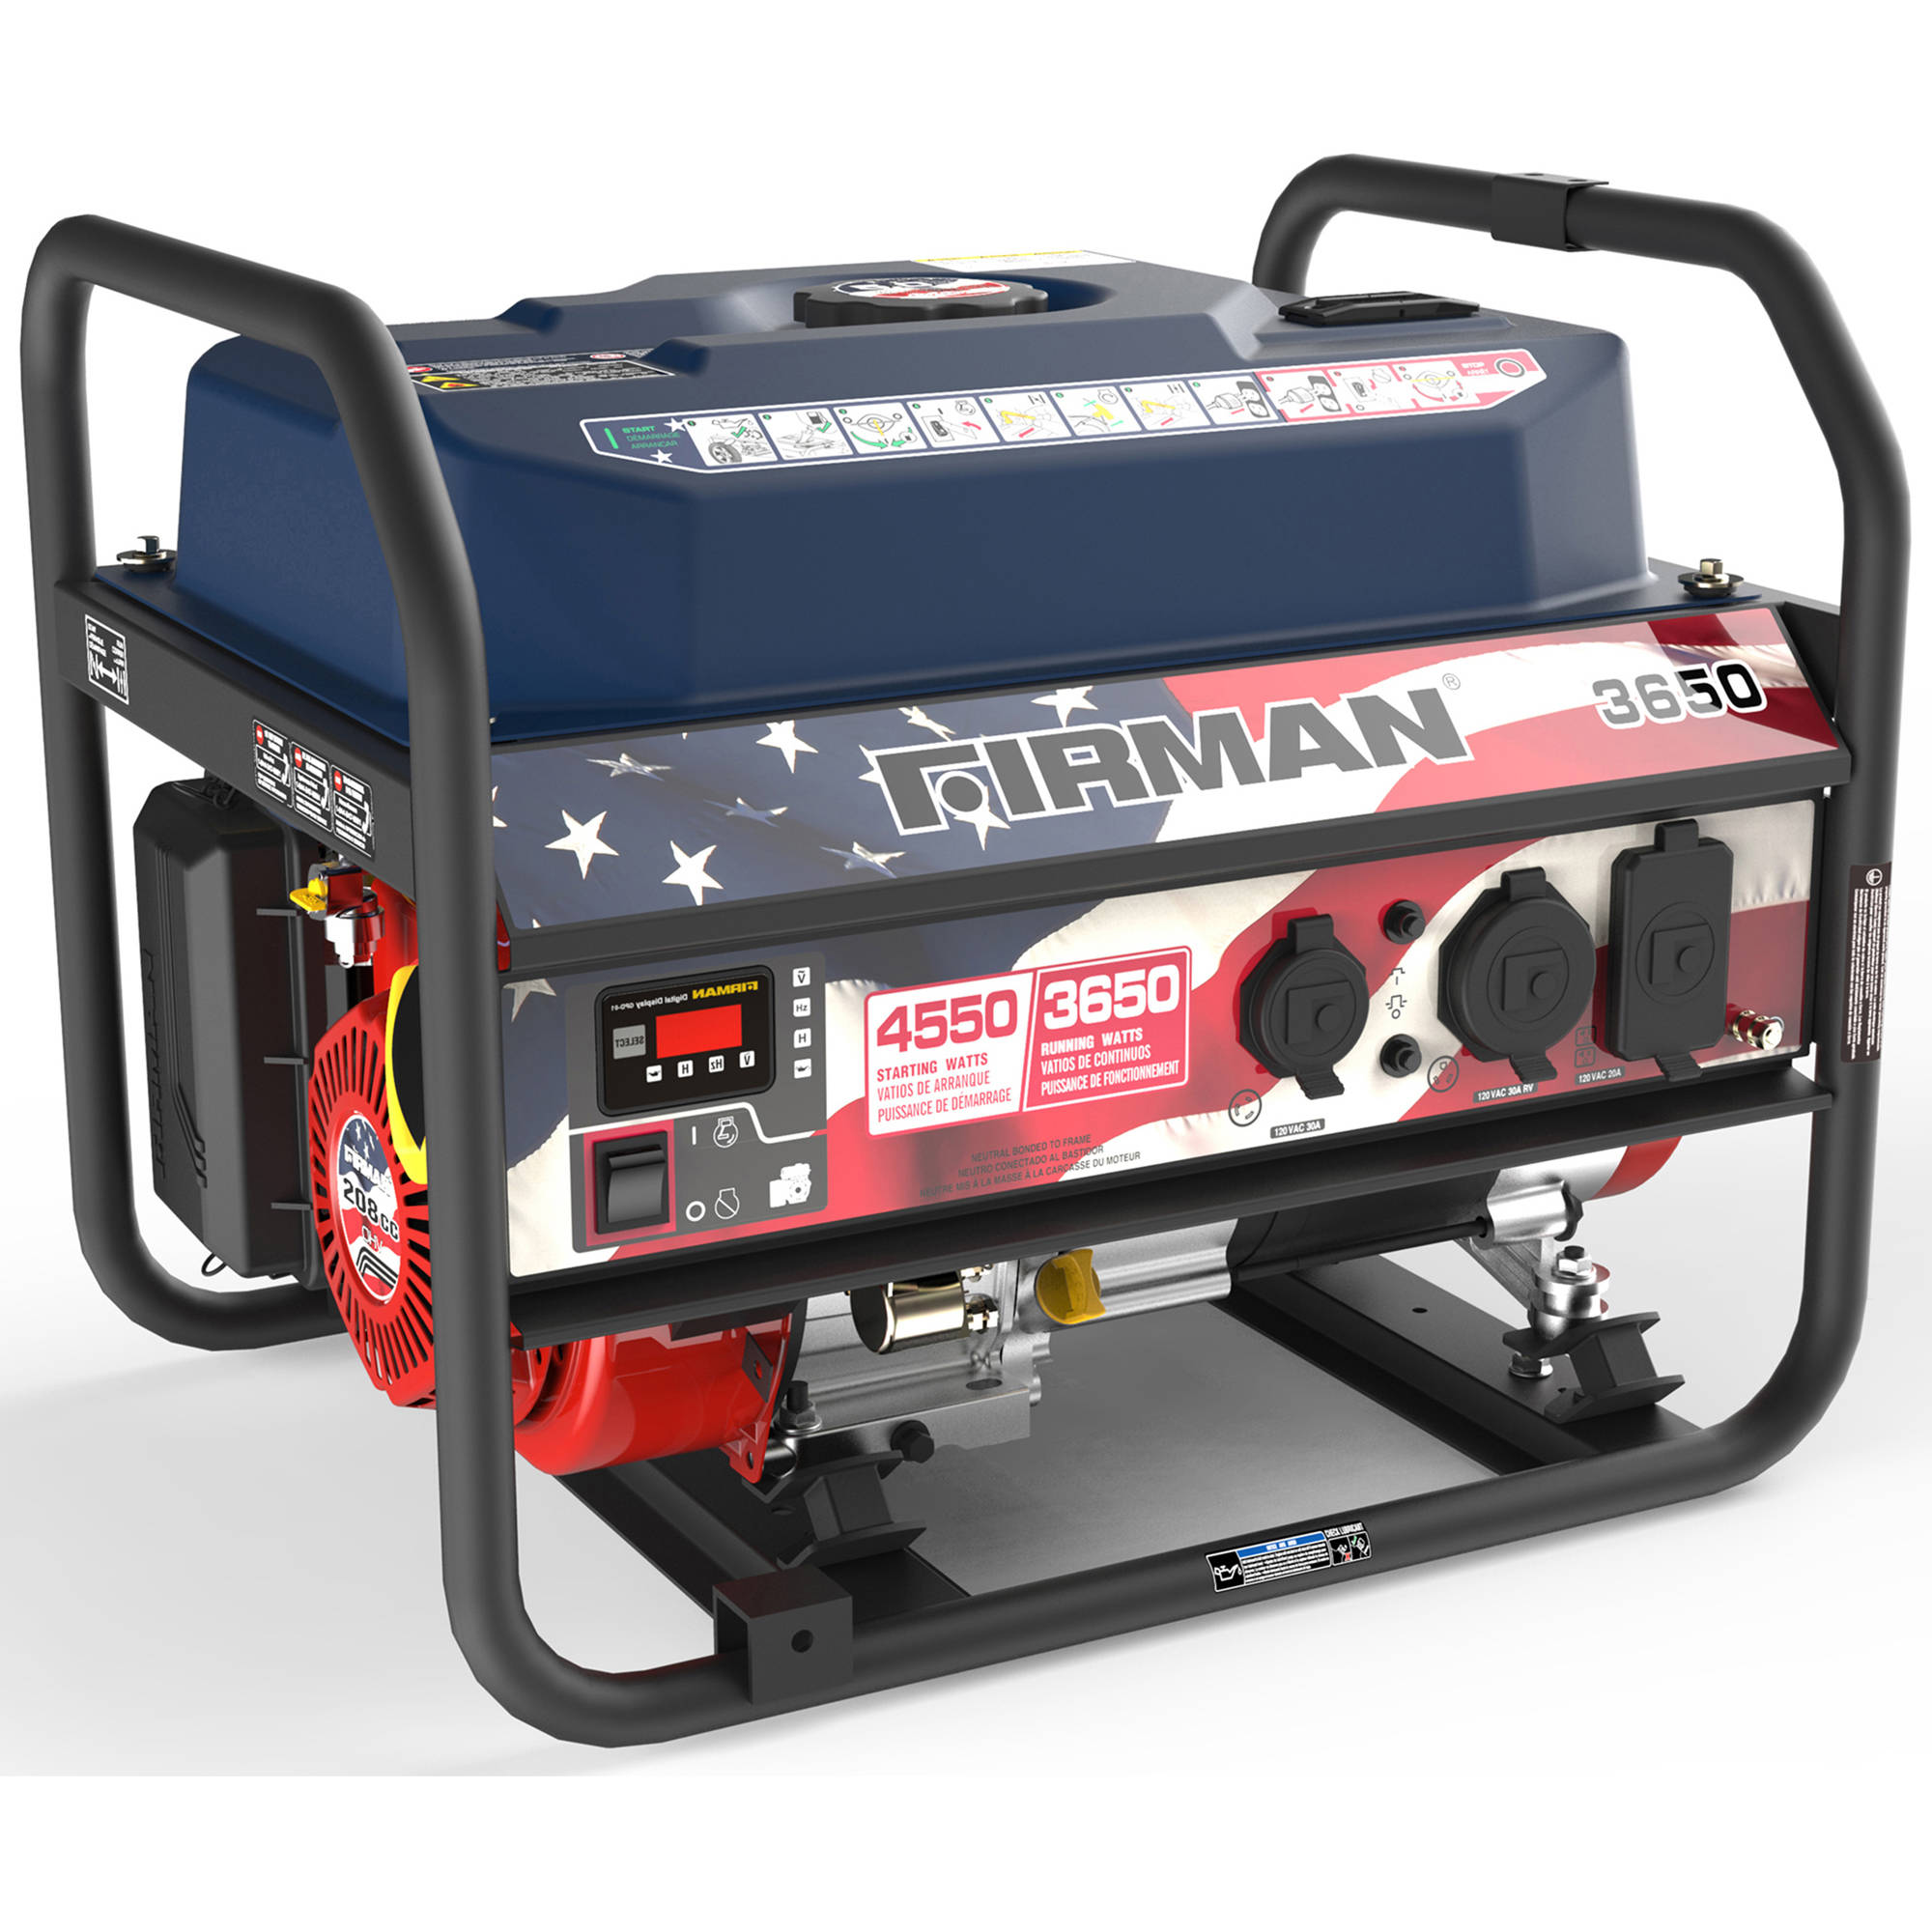 Firman Power Equipment P03611 Gas Powered 3650/4550 Watt (Performance Series) Extended Run Time Portable Generator, Red, White and Blue Edition